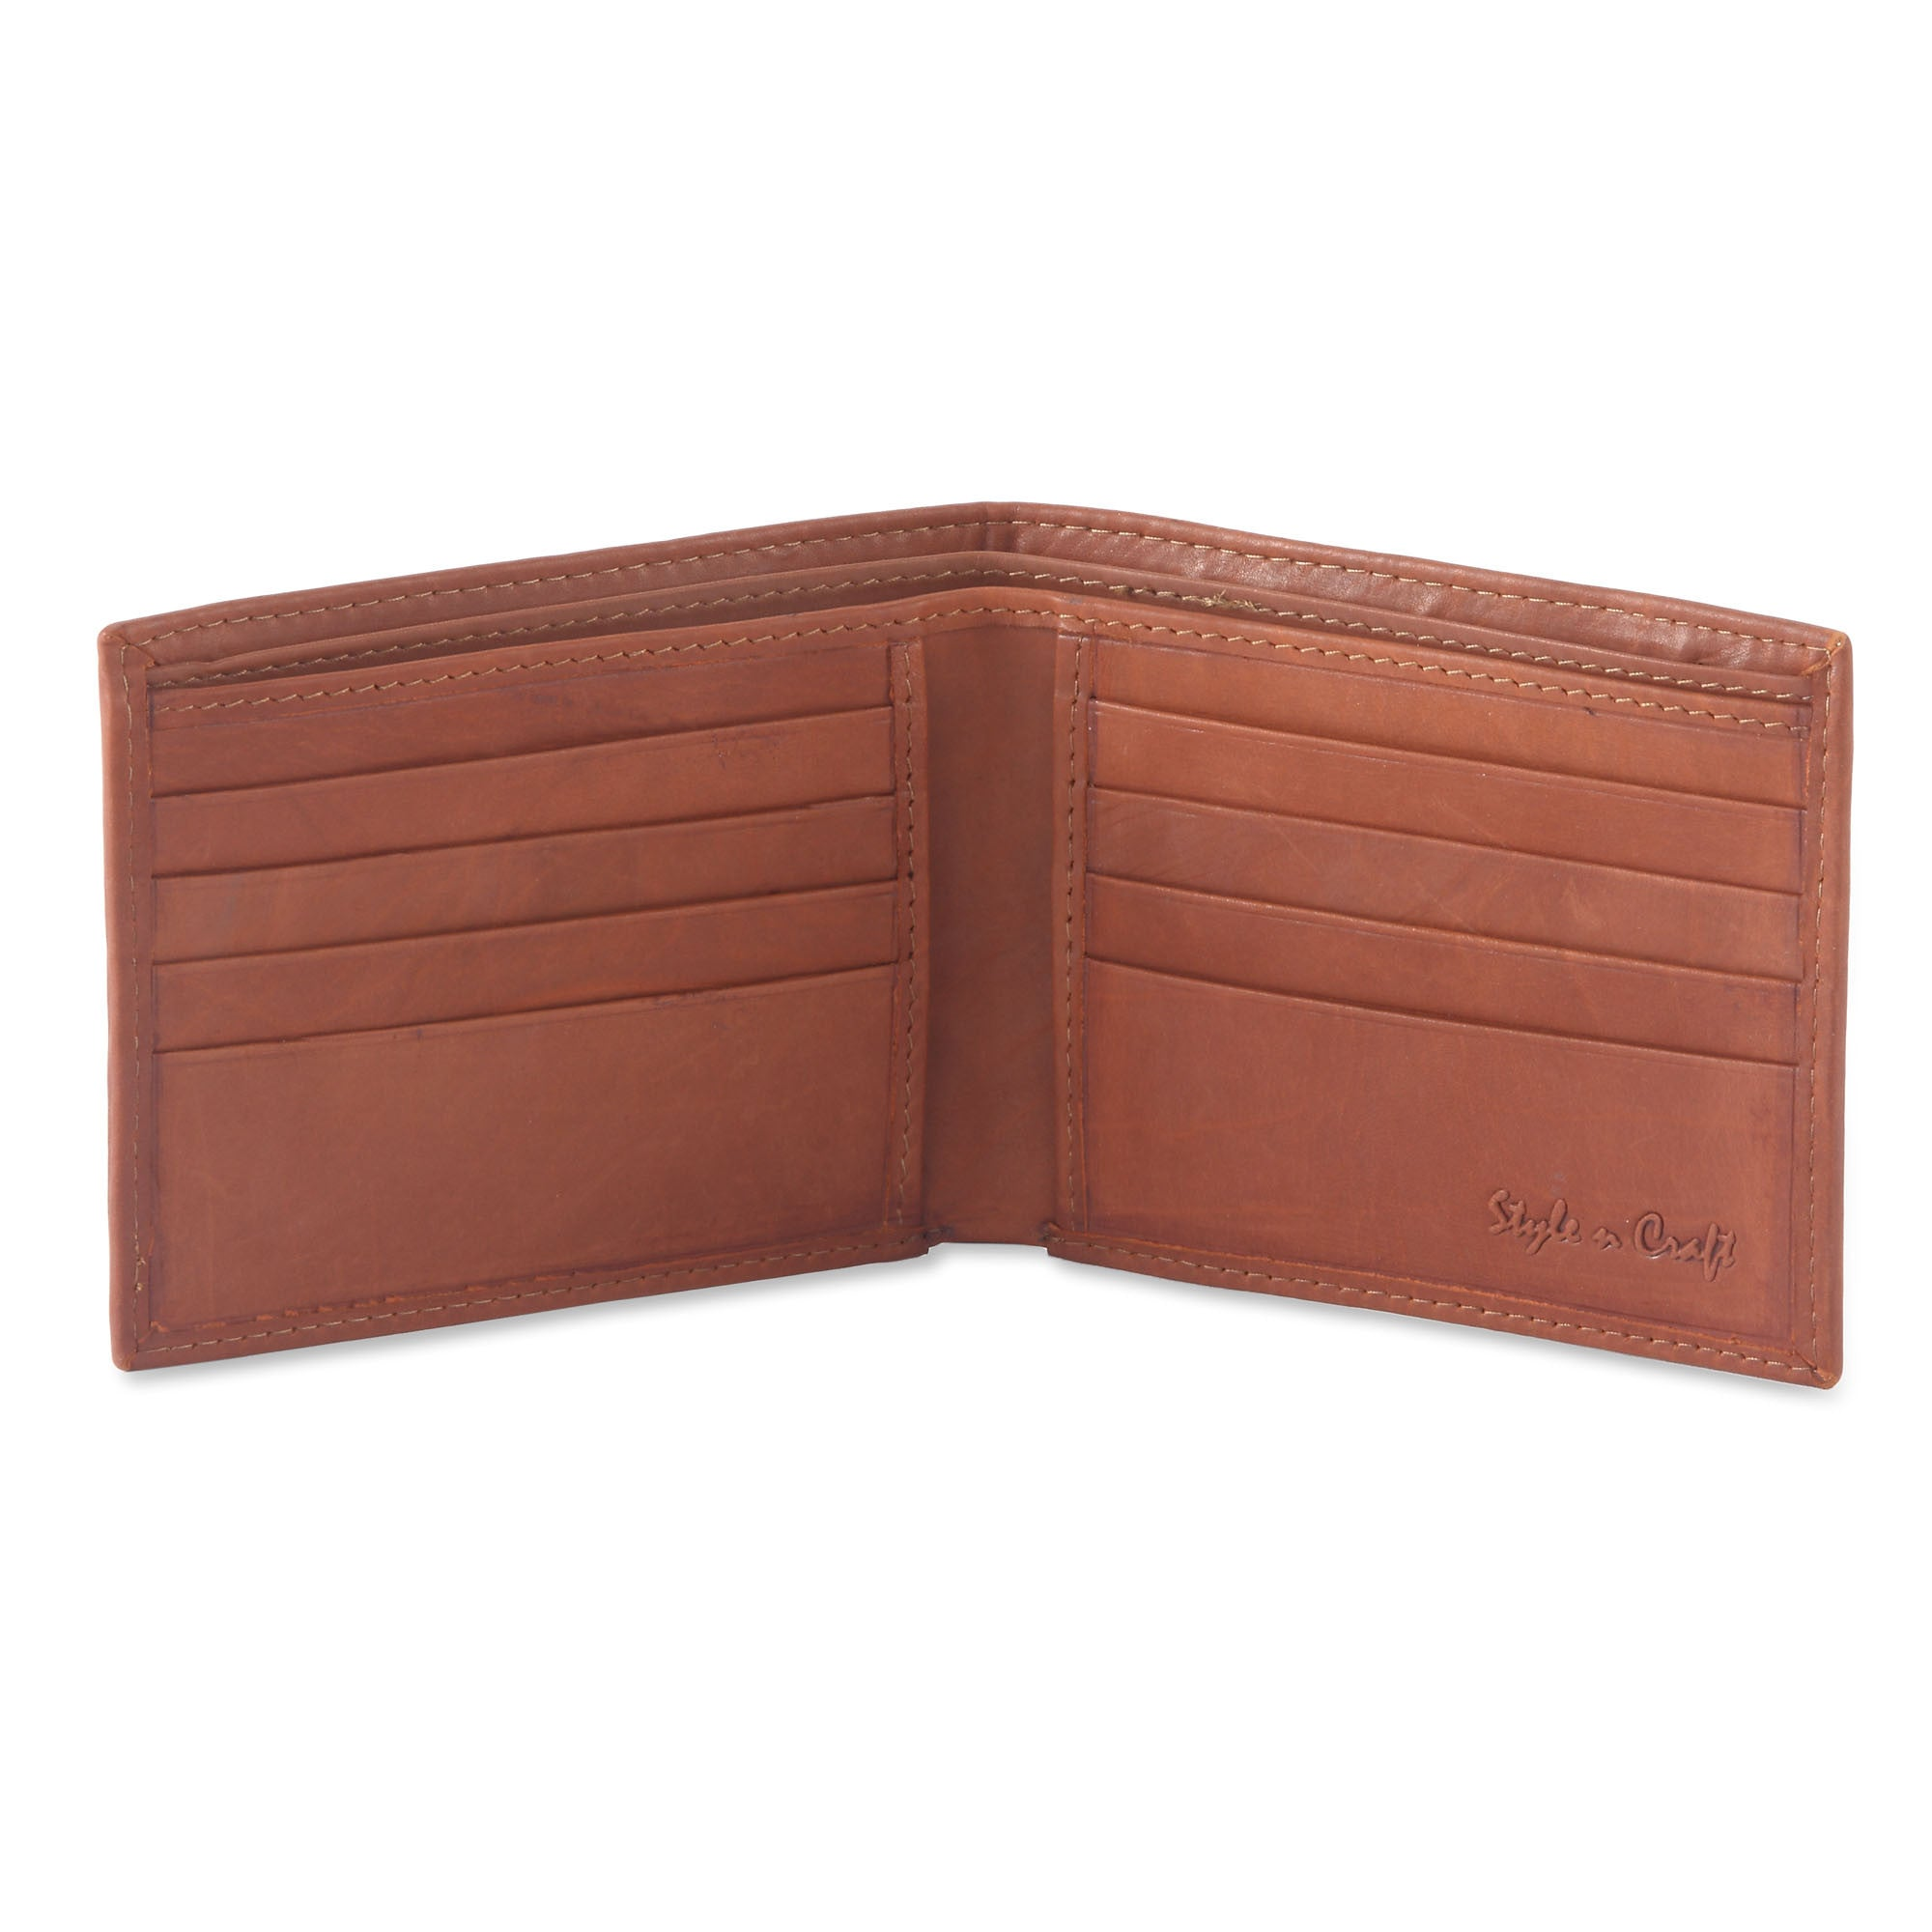 Style N Craft 200160-TN Slim B-fold Wallet in High Grade Cow Leather at Sears.com